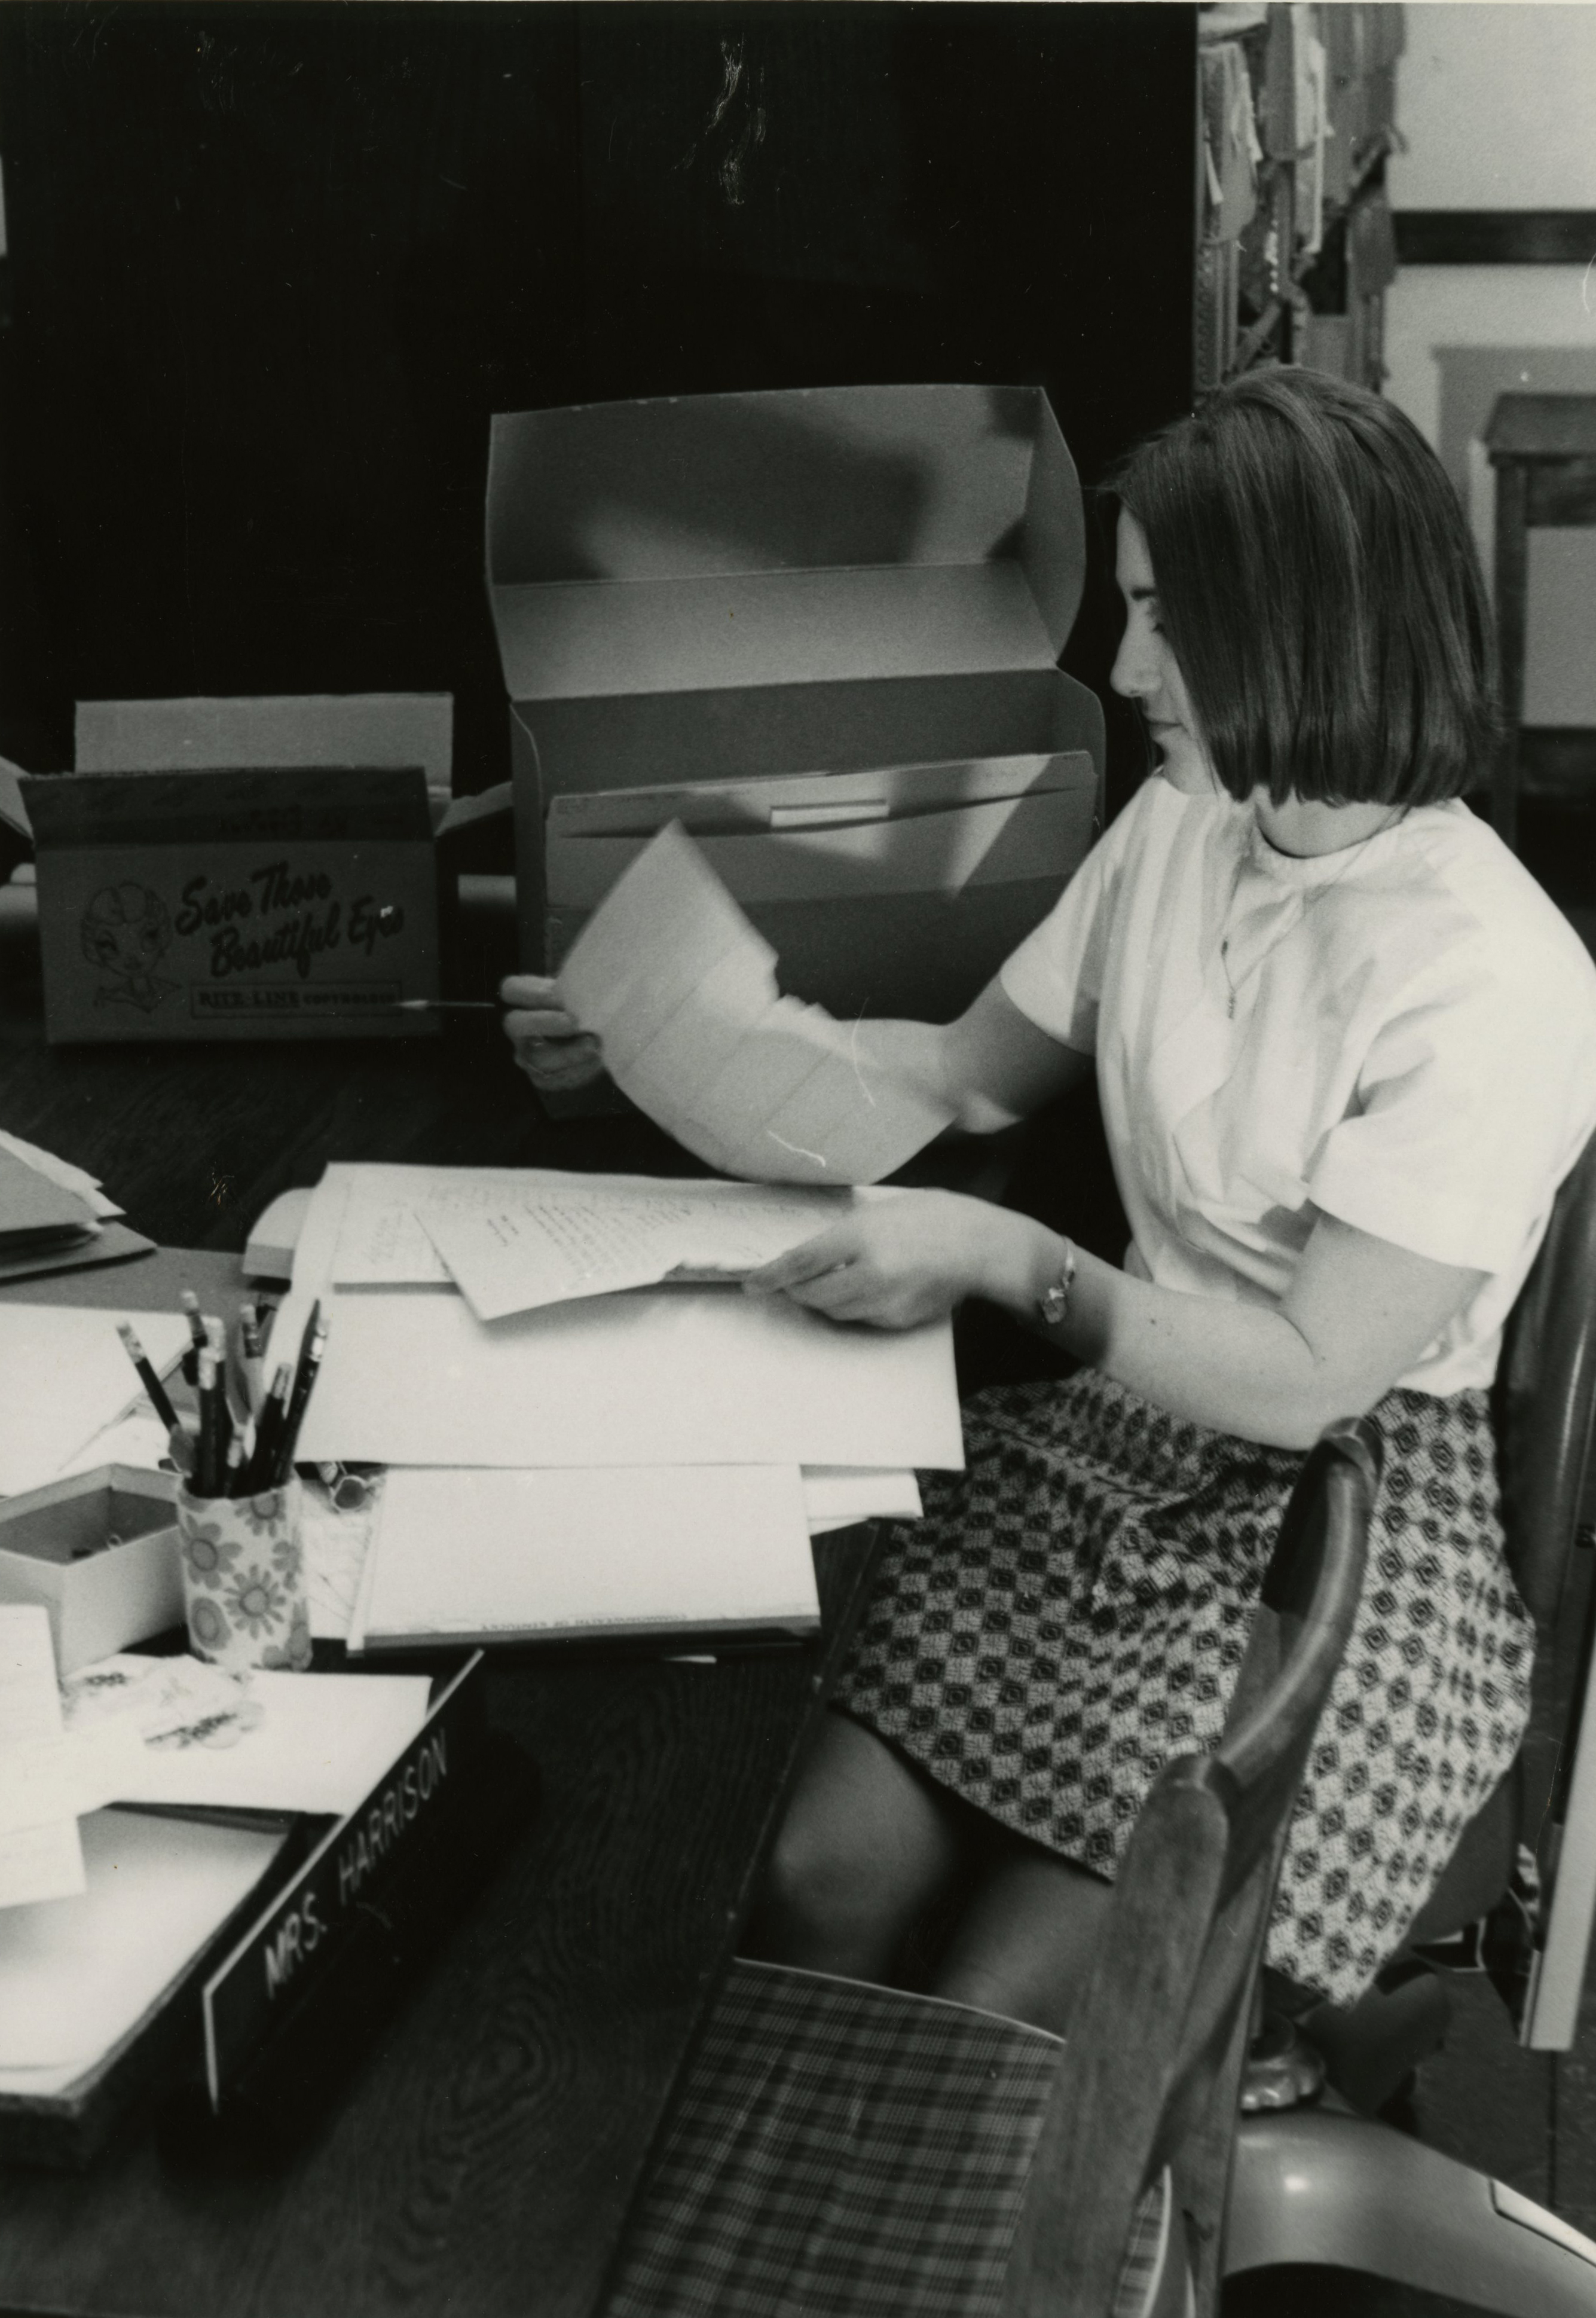 WKU Archives Collection Inventories